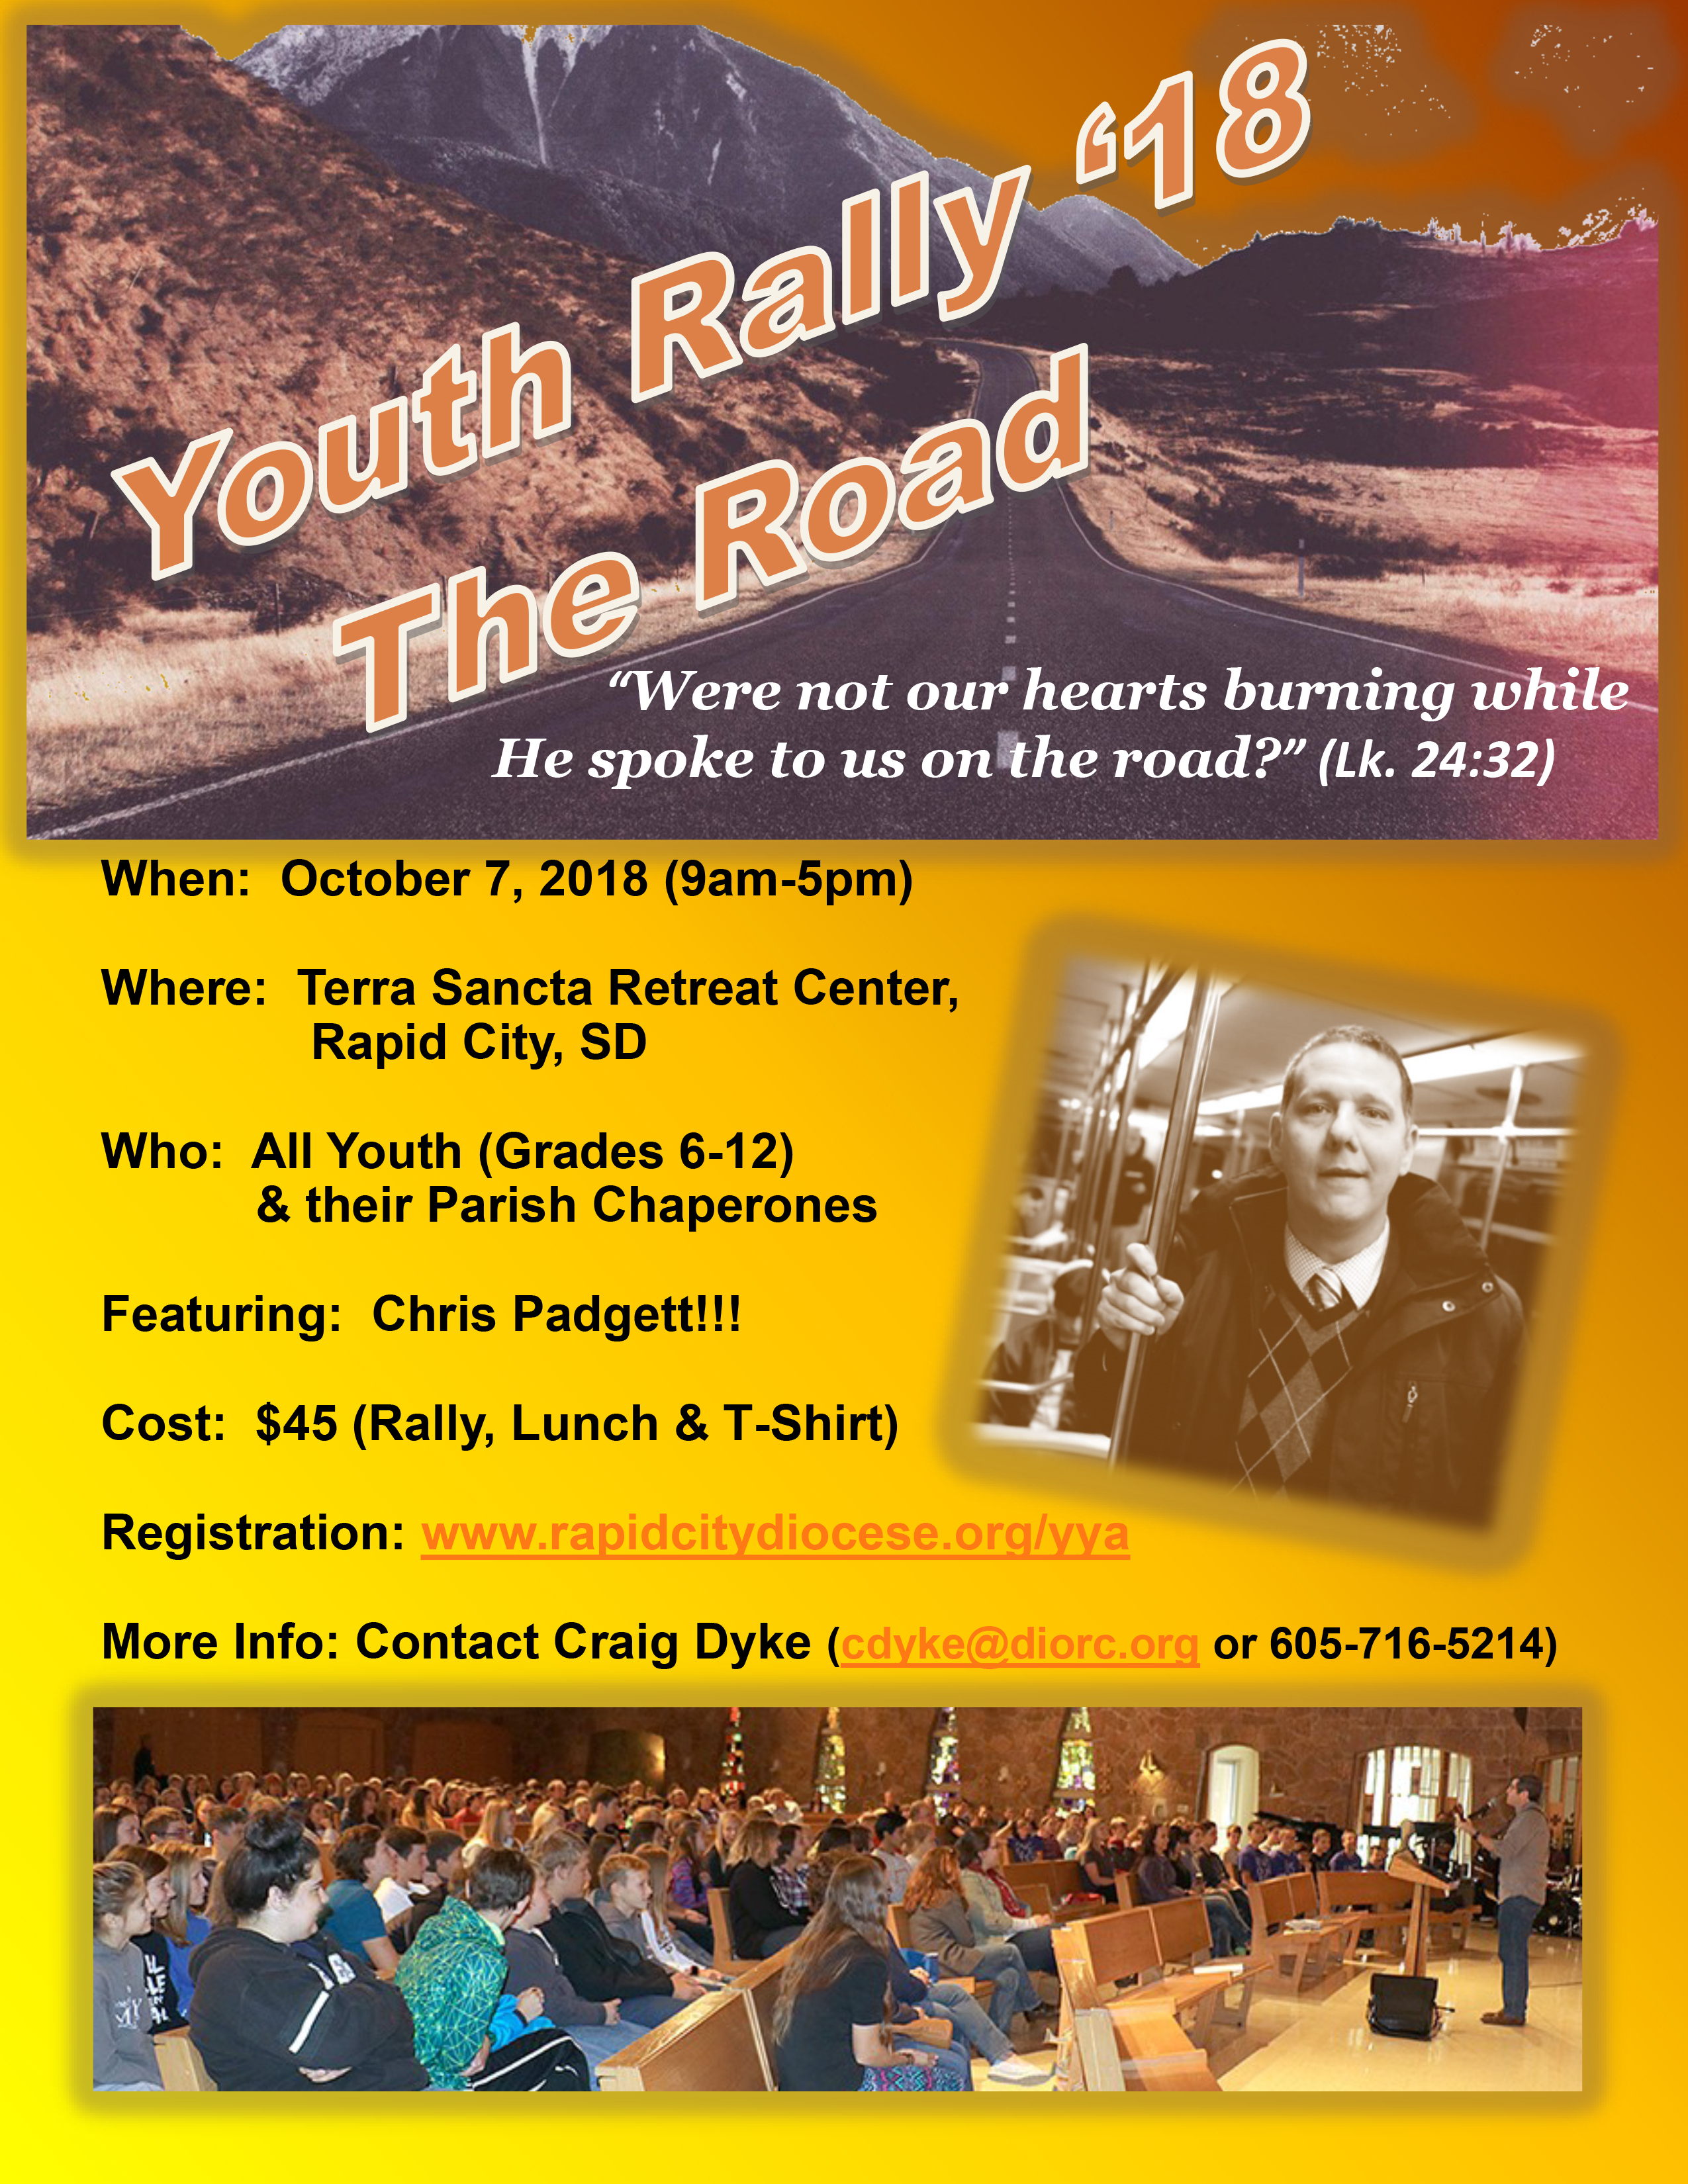 youth rally flyer 2018 diocese of rapid city